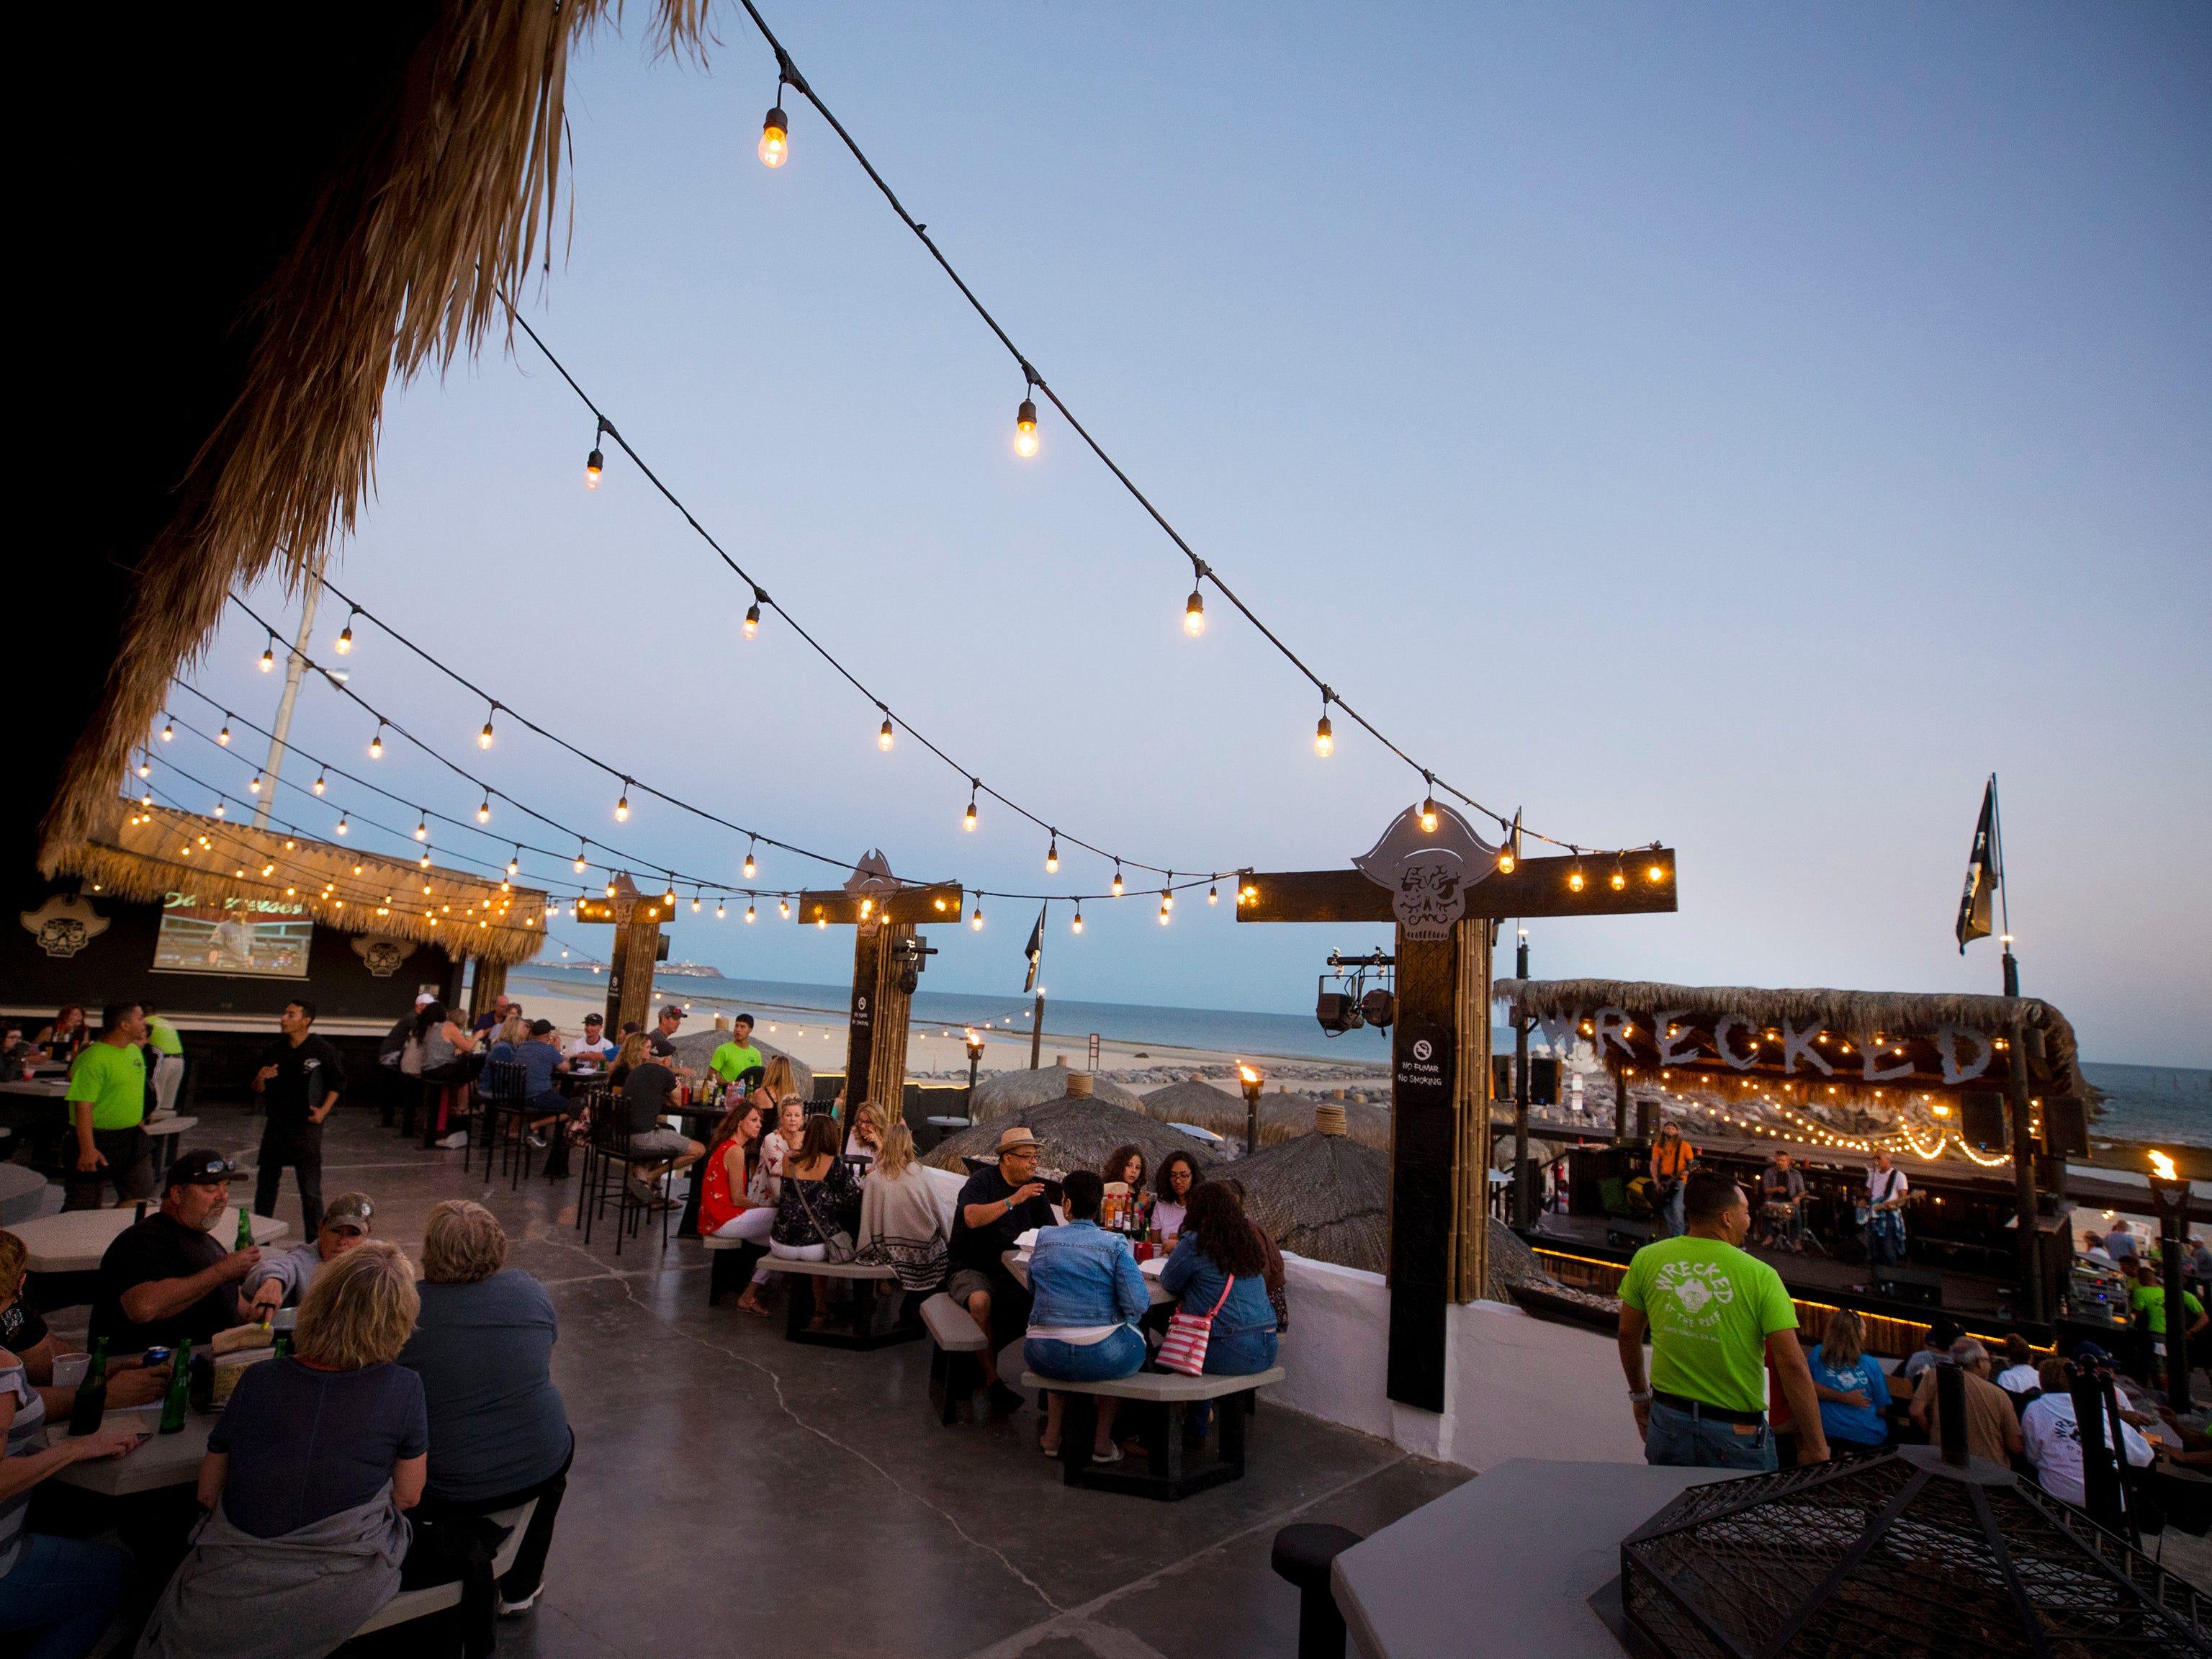 Wrecked at the Reef hosts a full menu, live music, bar, and volleyball all on beach front property in Puerto Penasco, Mexico.